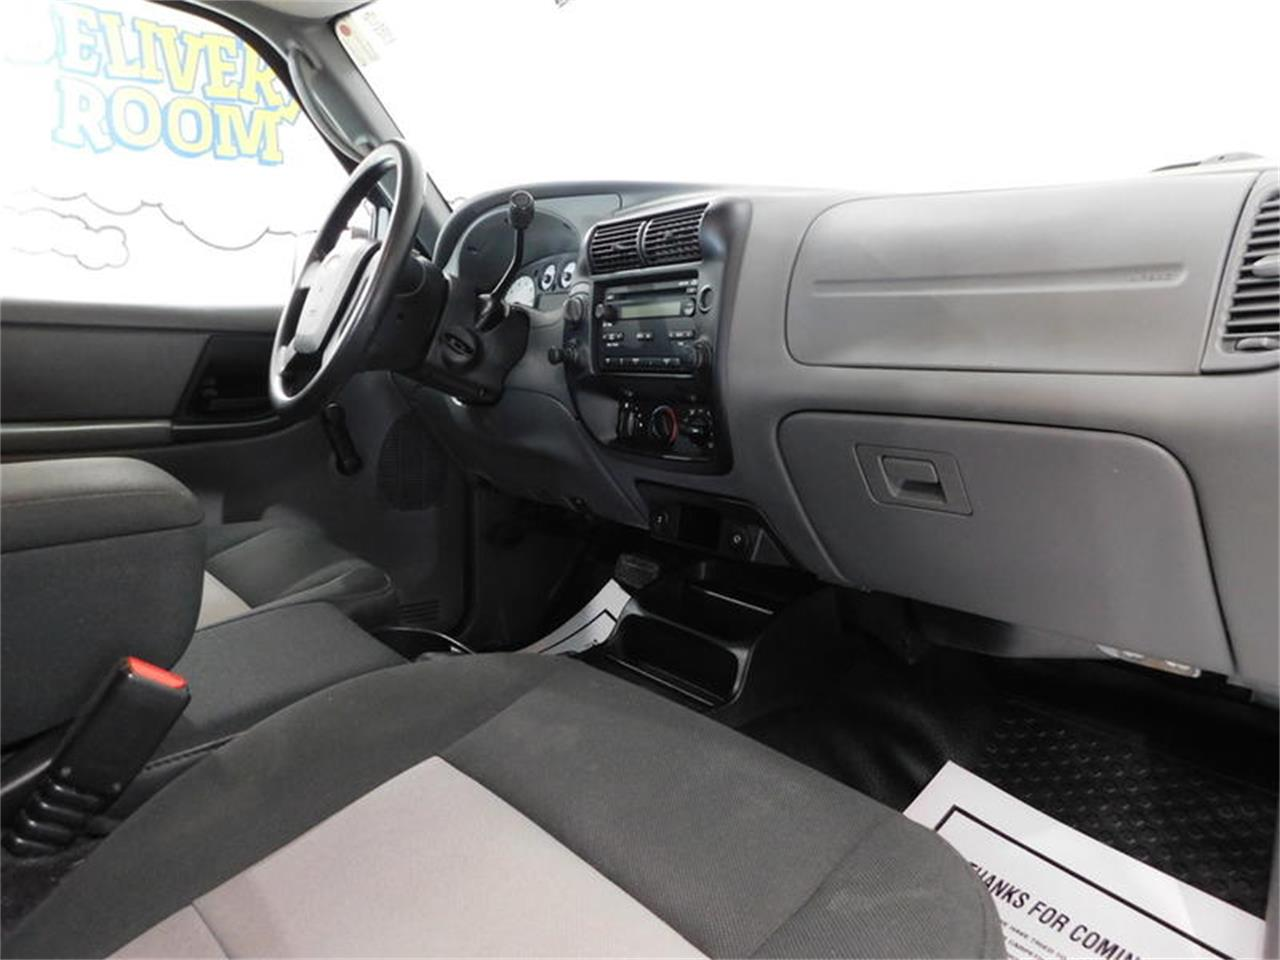 2011 Ford Ranger (CC-1219113) for sale in Hamburg, New York